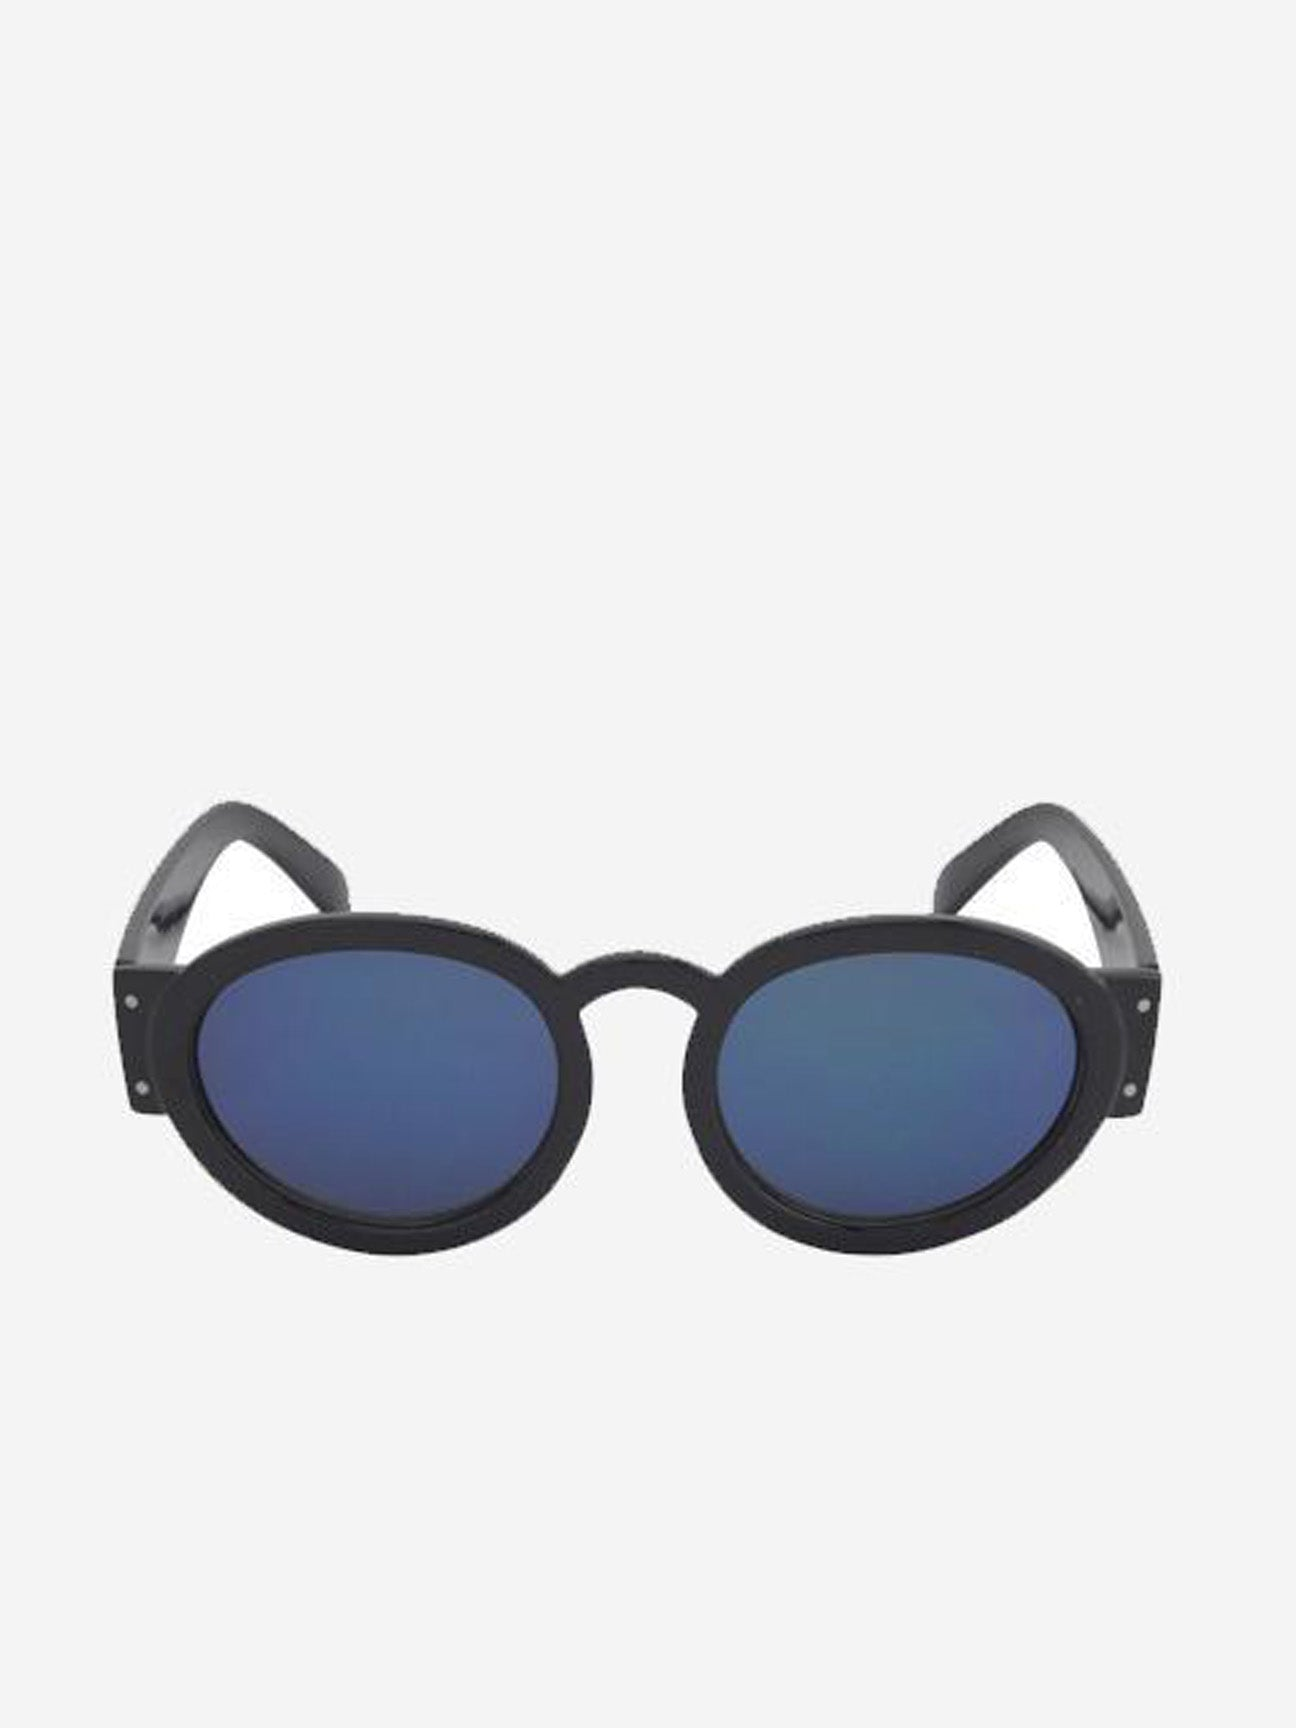 Black Frame Round Sunglasses with Blue Tinted Lens